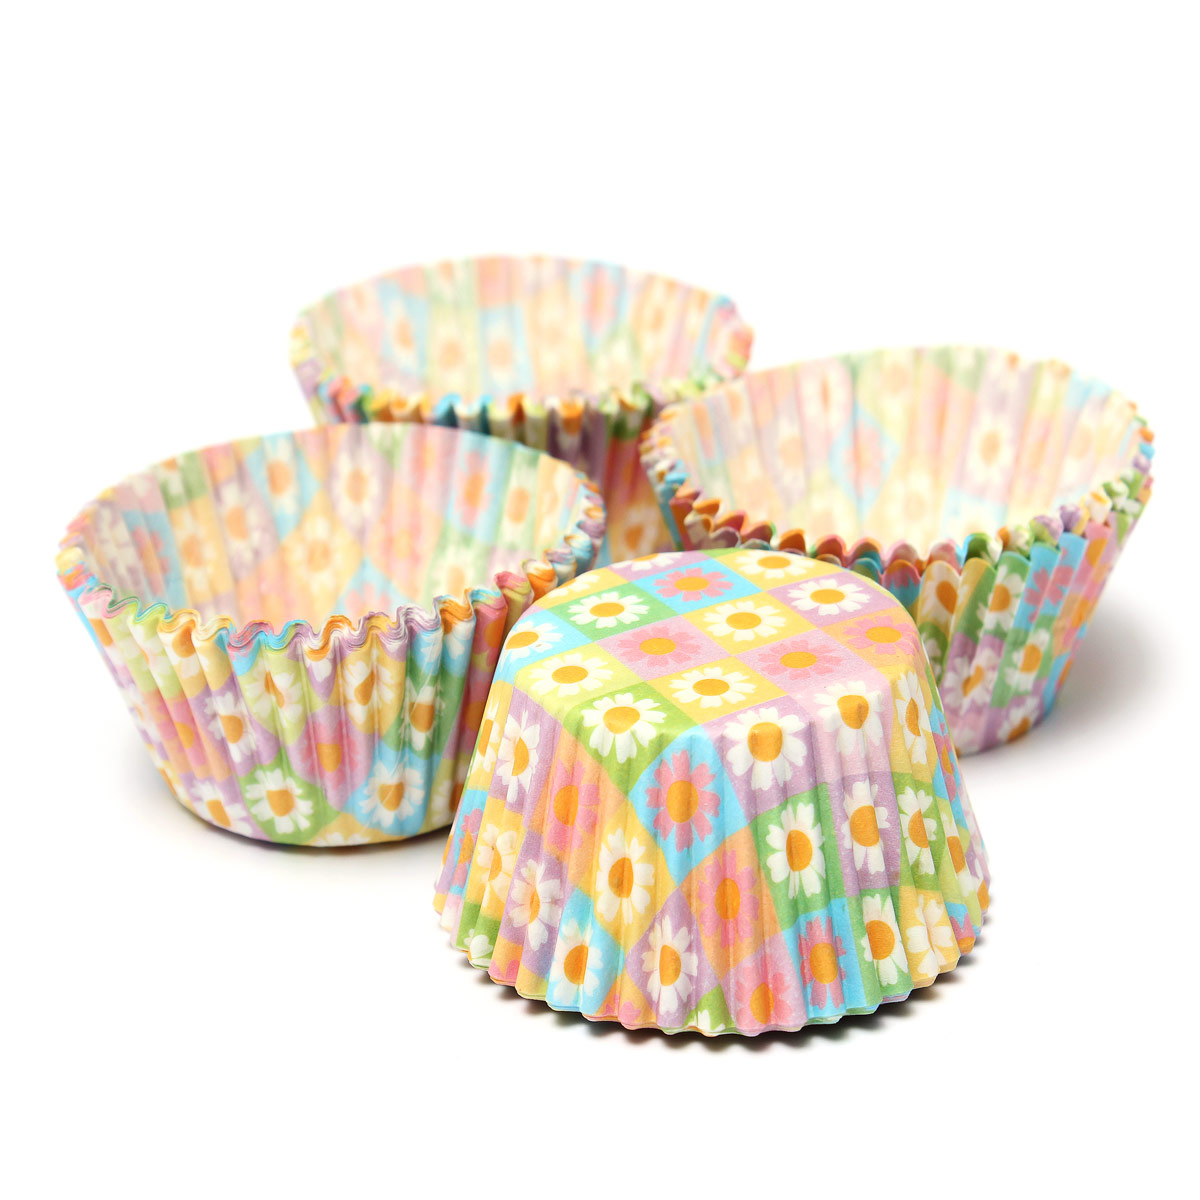 Colorful Flower Pattern Paper Cupcake Cake Muffin Cup Mold Cases Wedding Party Valentine Decor Stand Wrapper Toppers 100Pcs(China (Mainland))